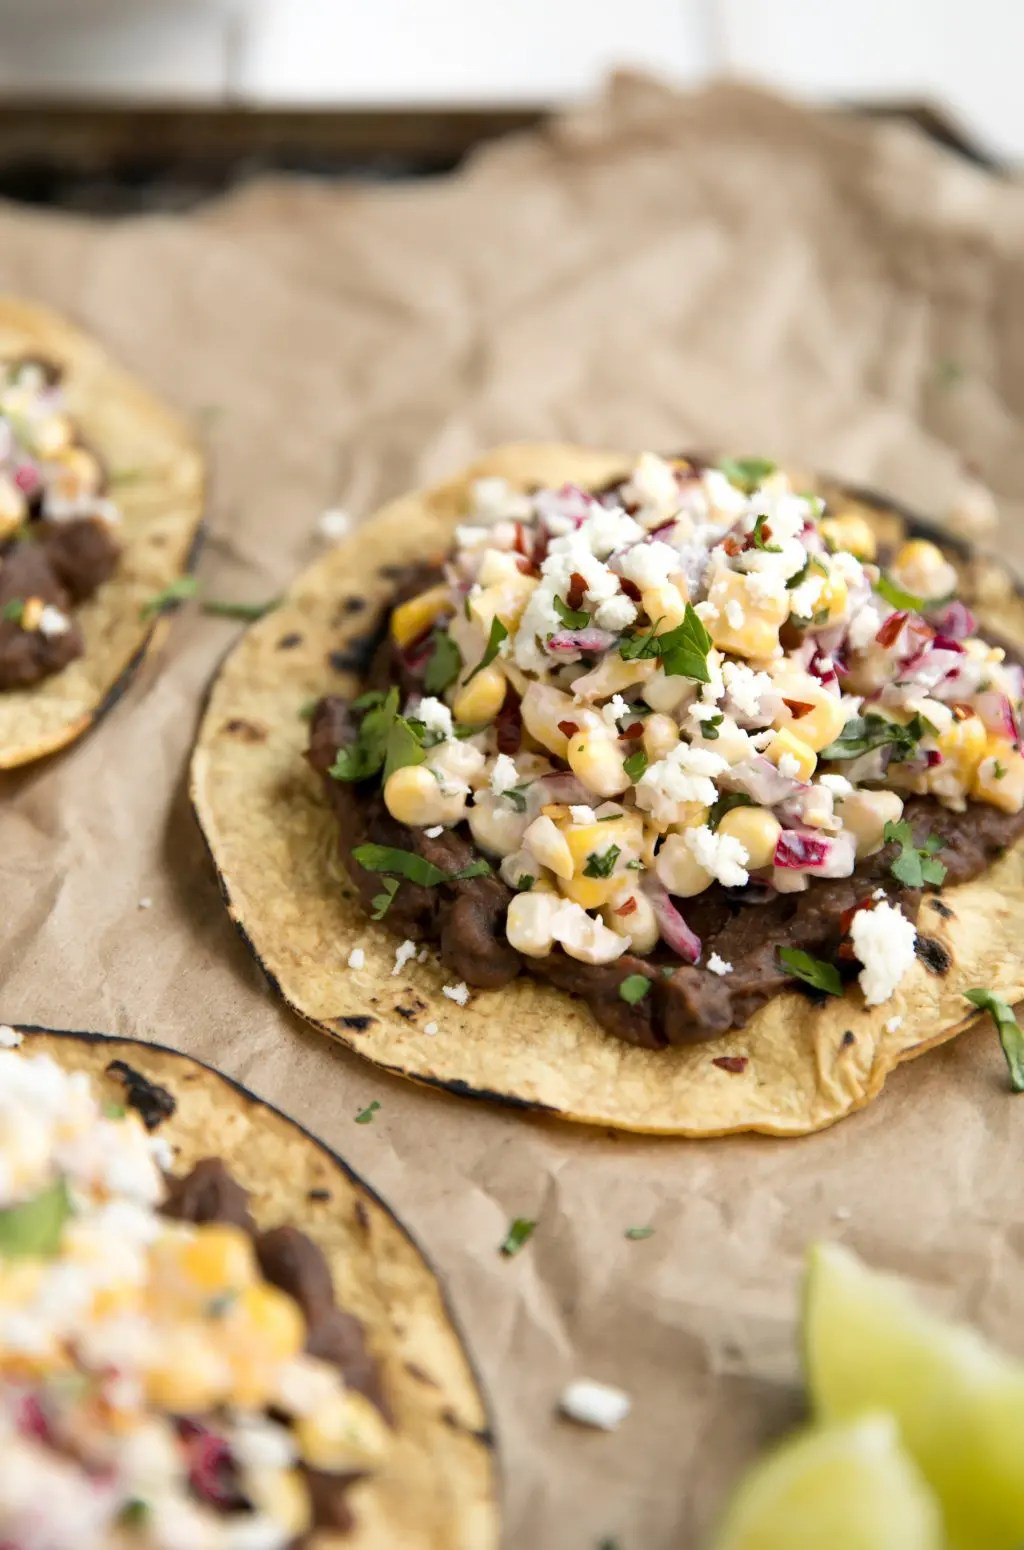 Mexican Street Corn Tostadas with Chipotle Black Beans